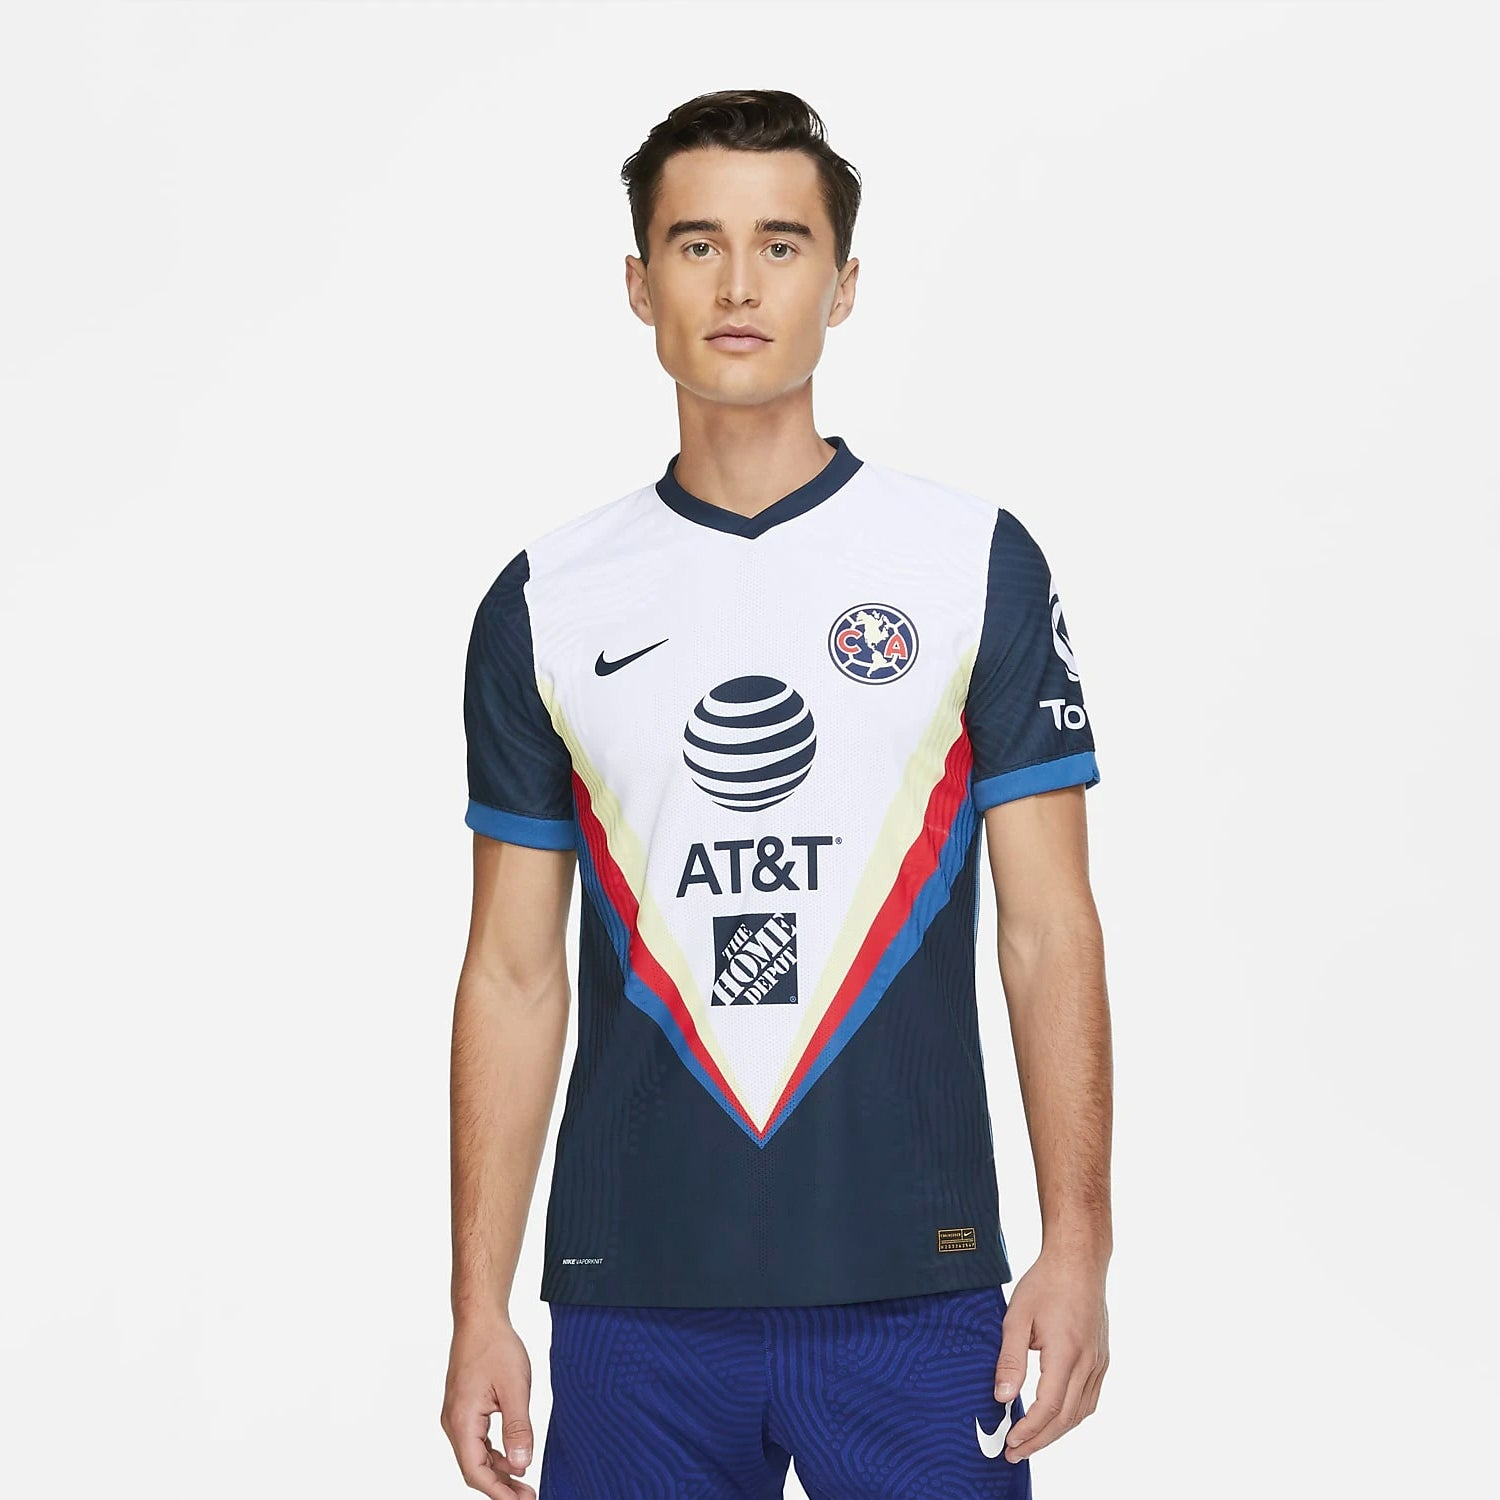 CLUB AMERICA AUTENTICA PLAYERA VISITA 20-21 | Club America Vapor Match Away Jersey 20/21